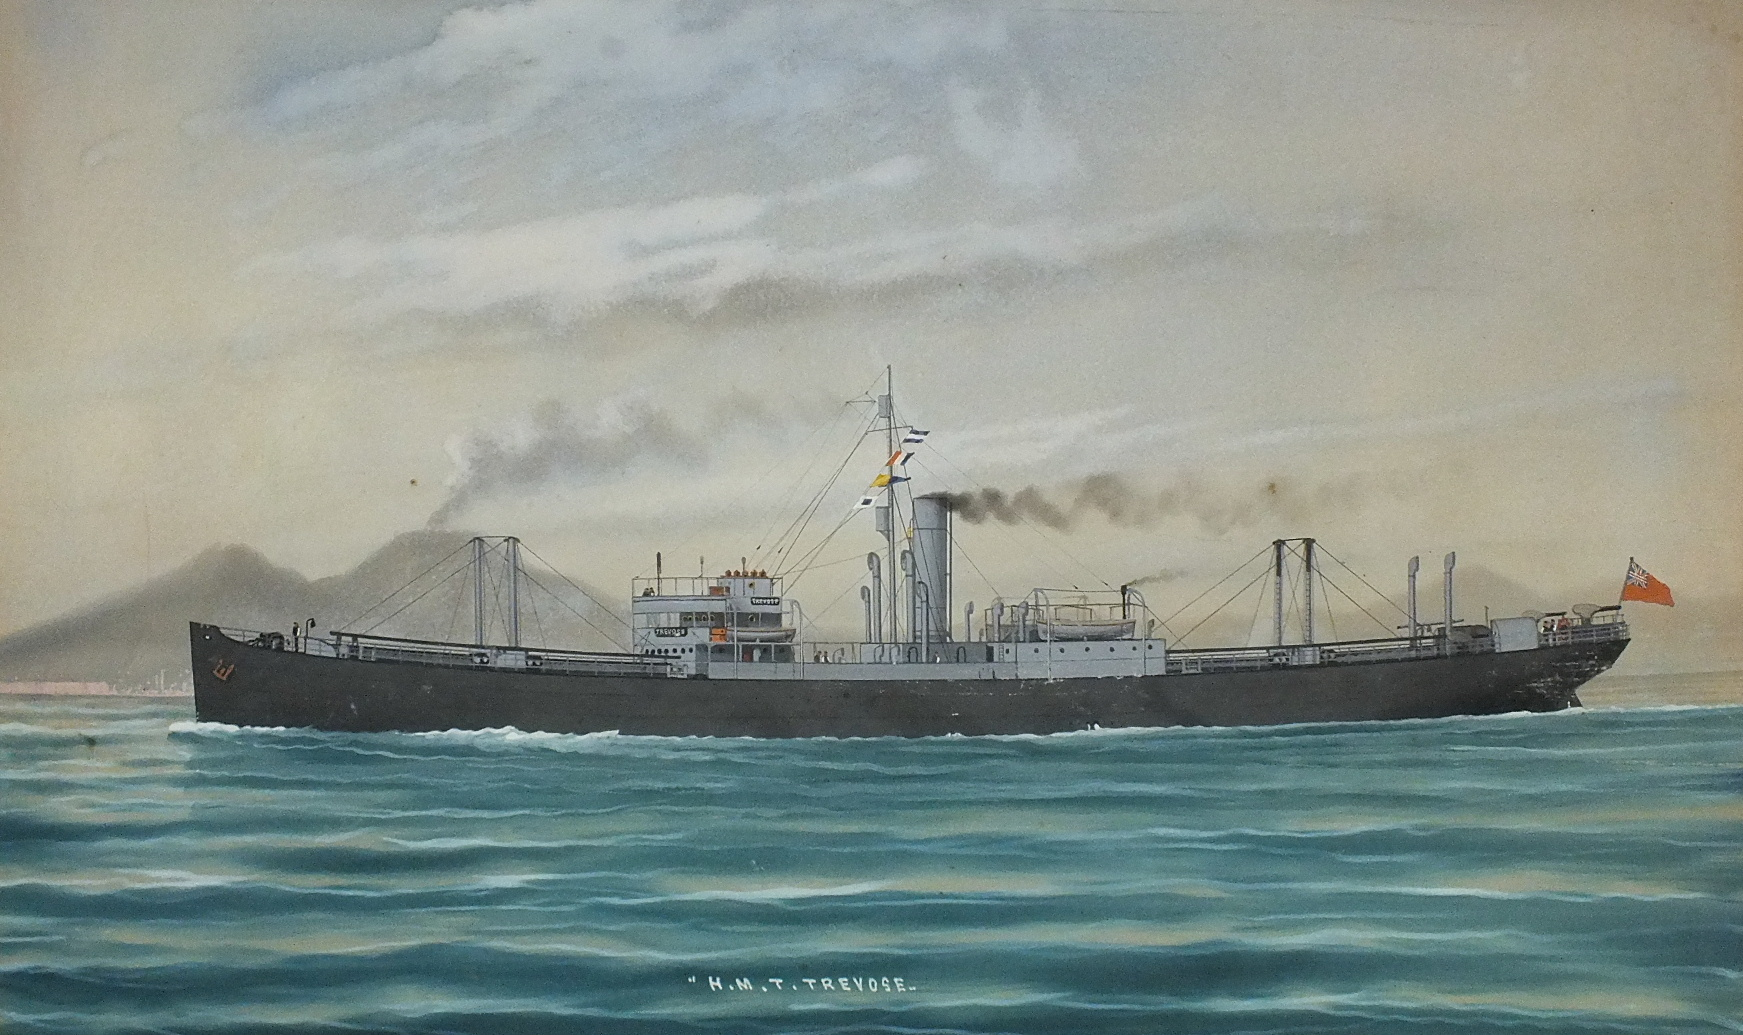 Neapolitan School SS TREVOSE AT SEA WITH ANOTHER VESSEL ON THE HORIZON Unsigned gouache, titled, - Image 2 of 2